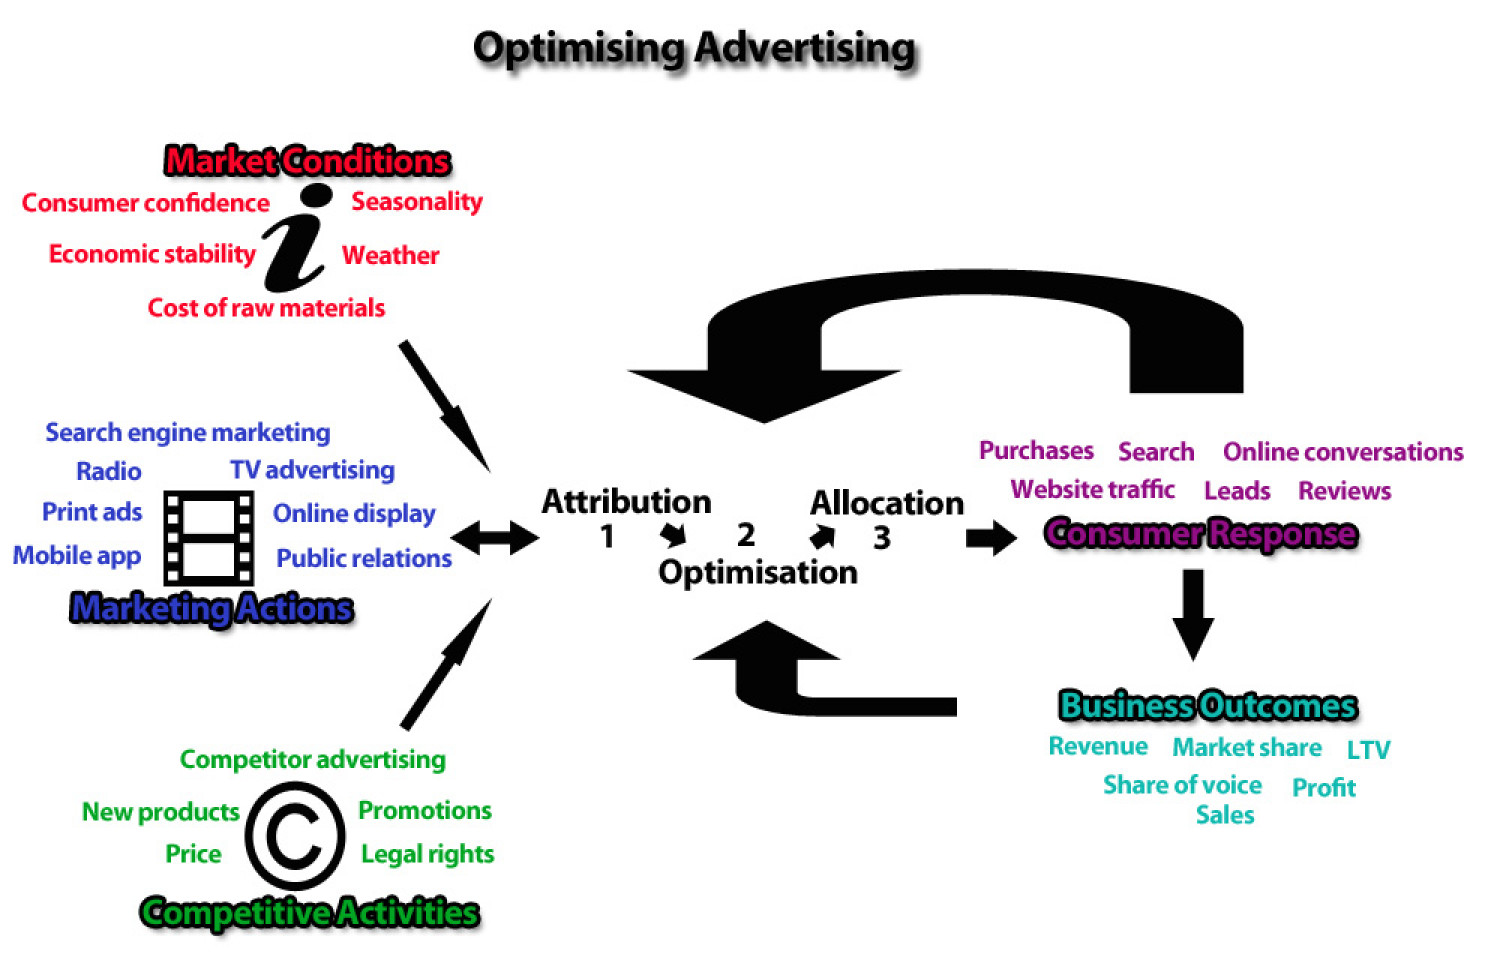 Optimising Advertising Infographic